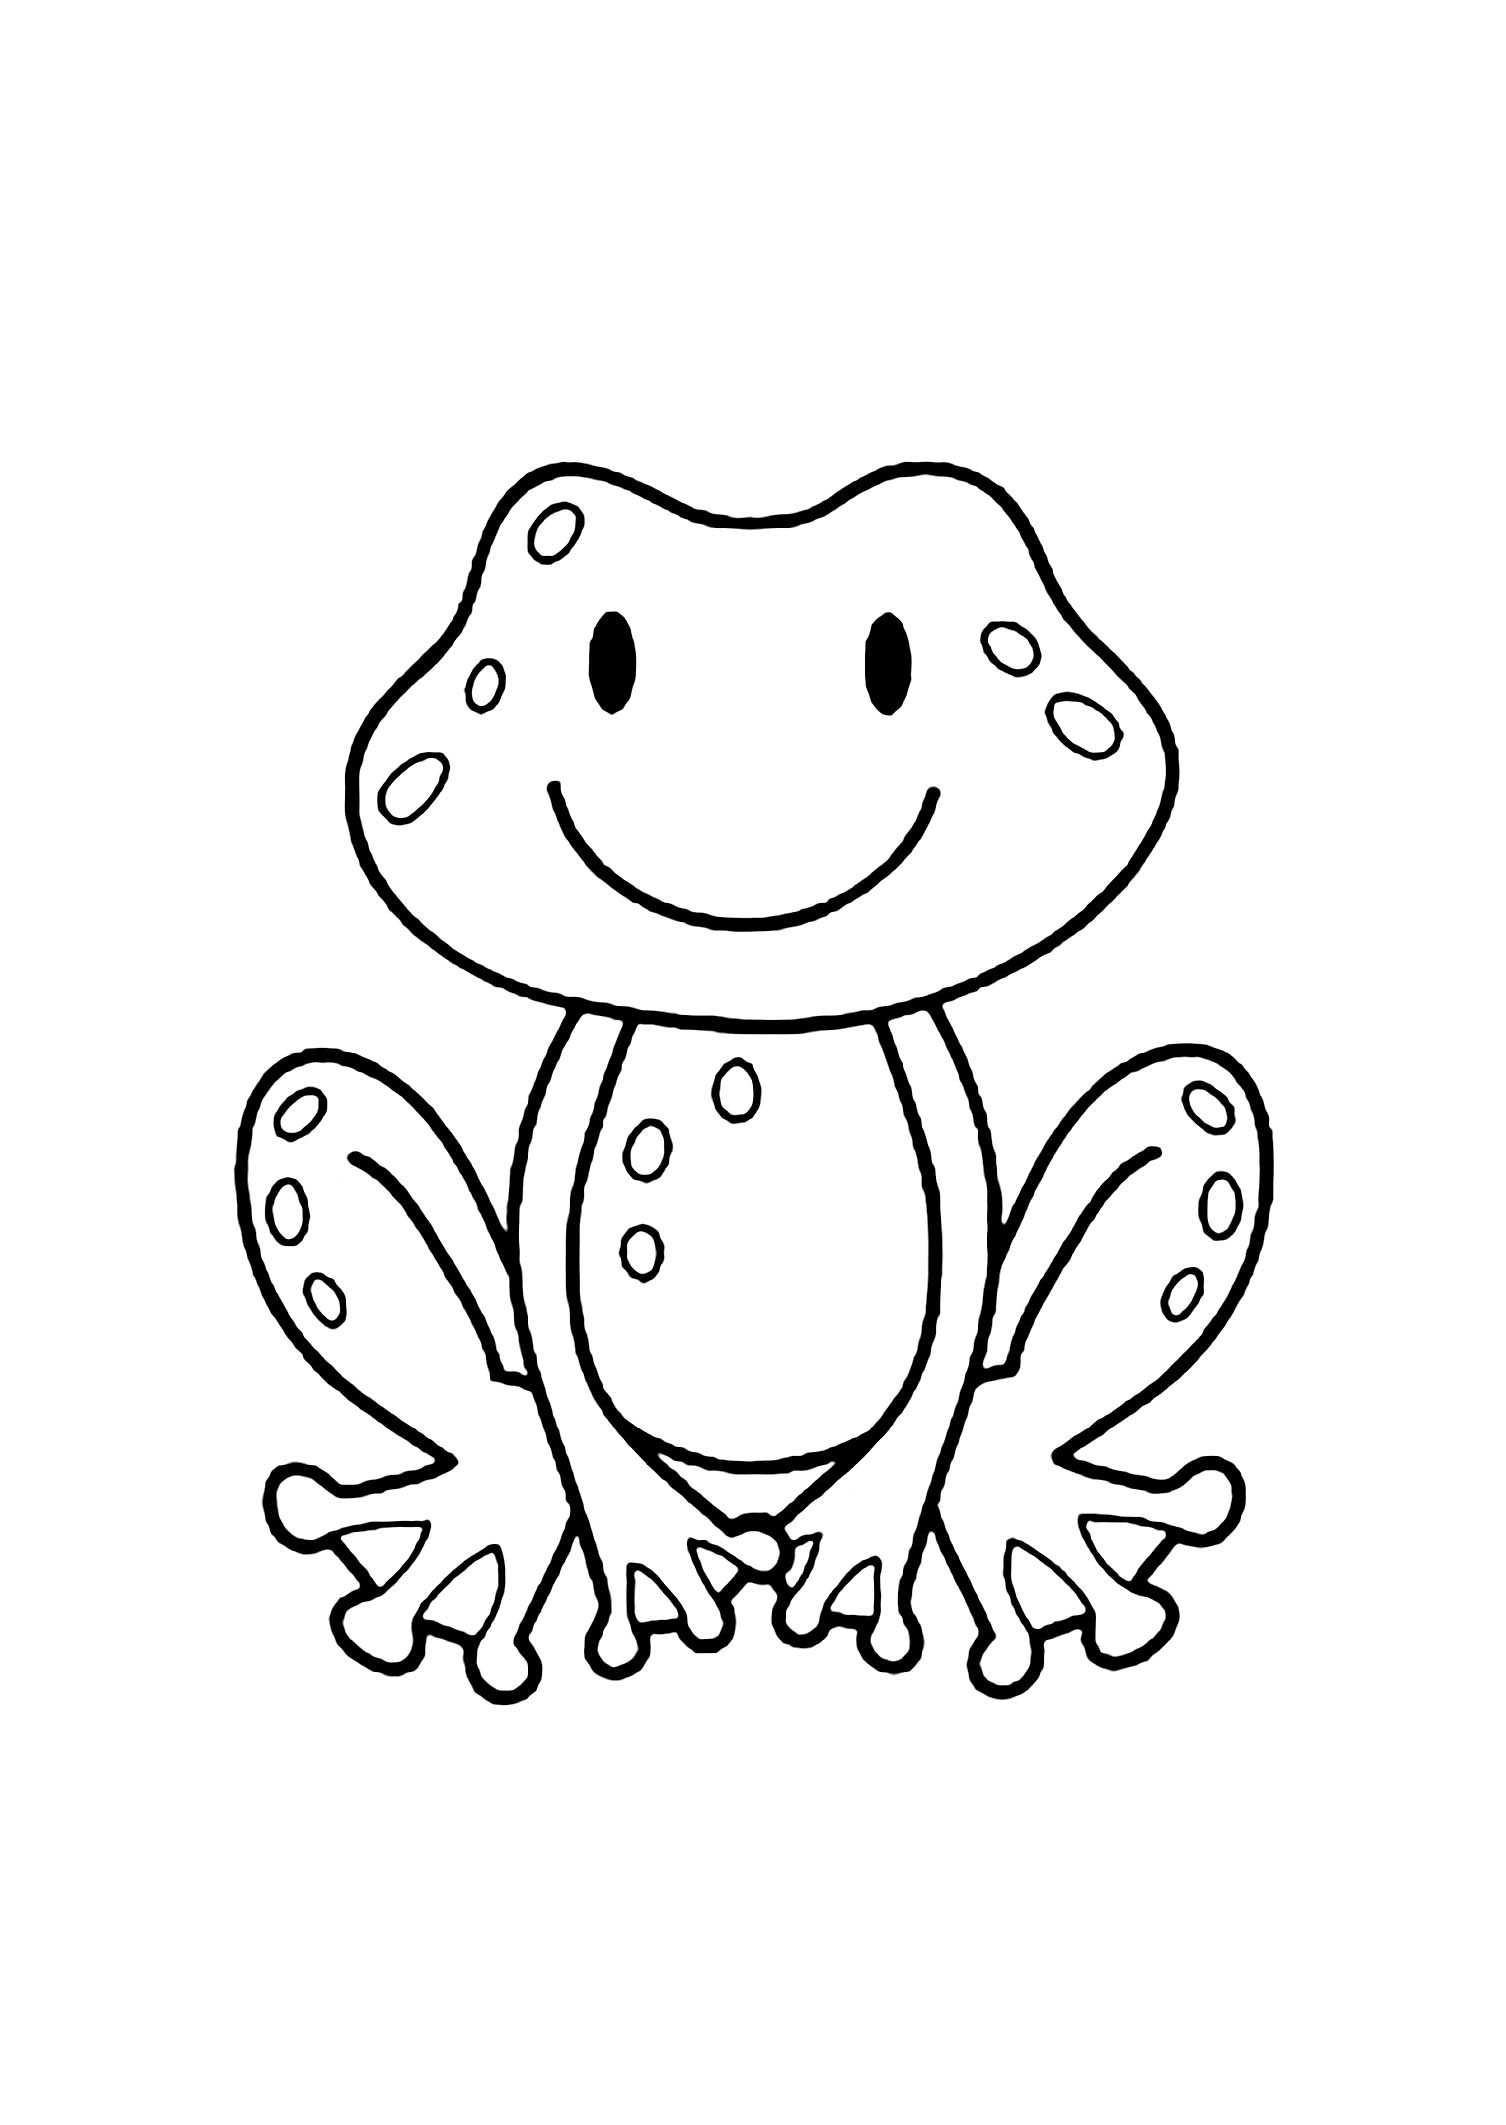 frog coloring pages to print frogs for kids frogs kids coloring pages pages coloring frog to print